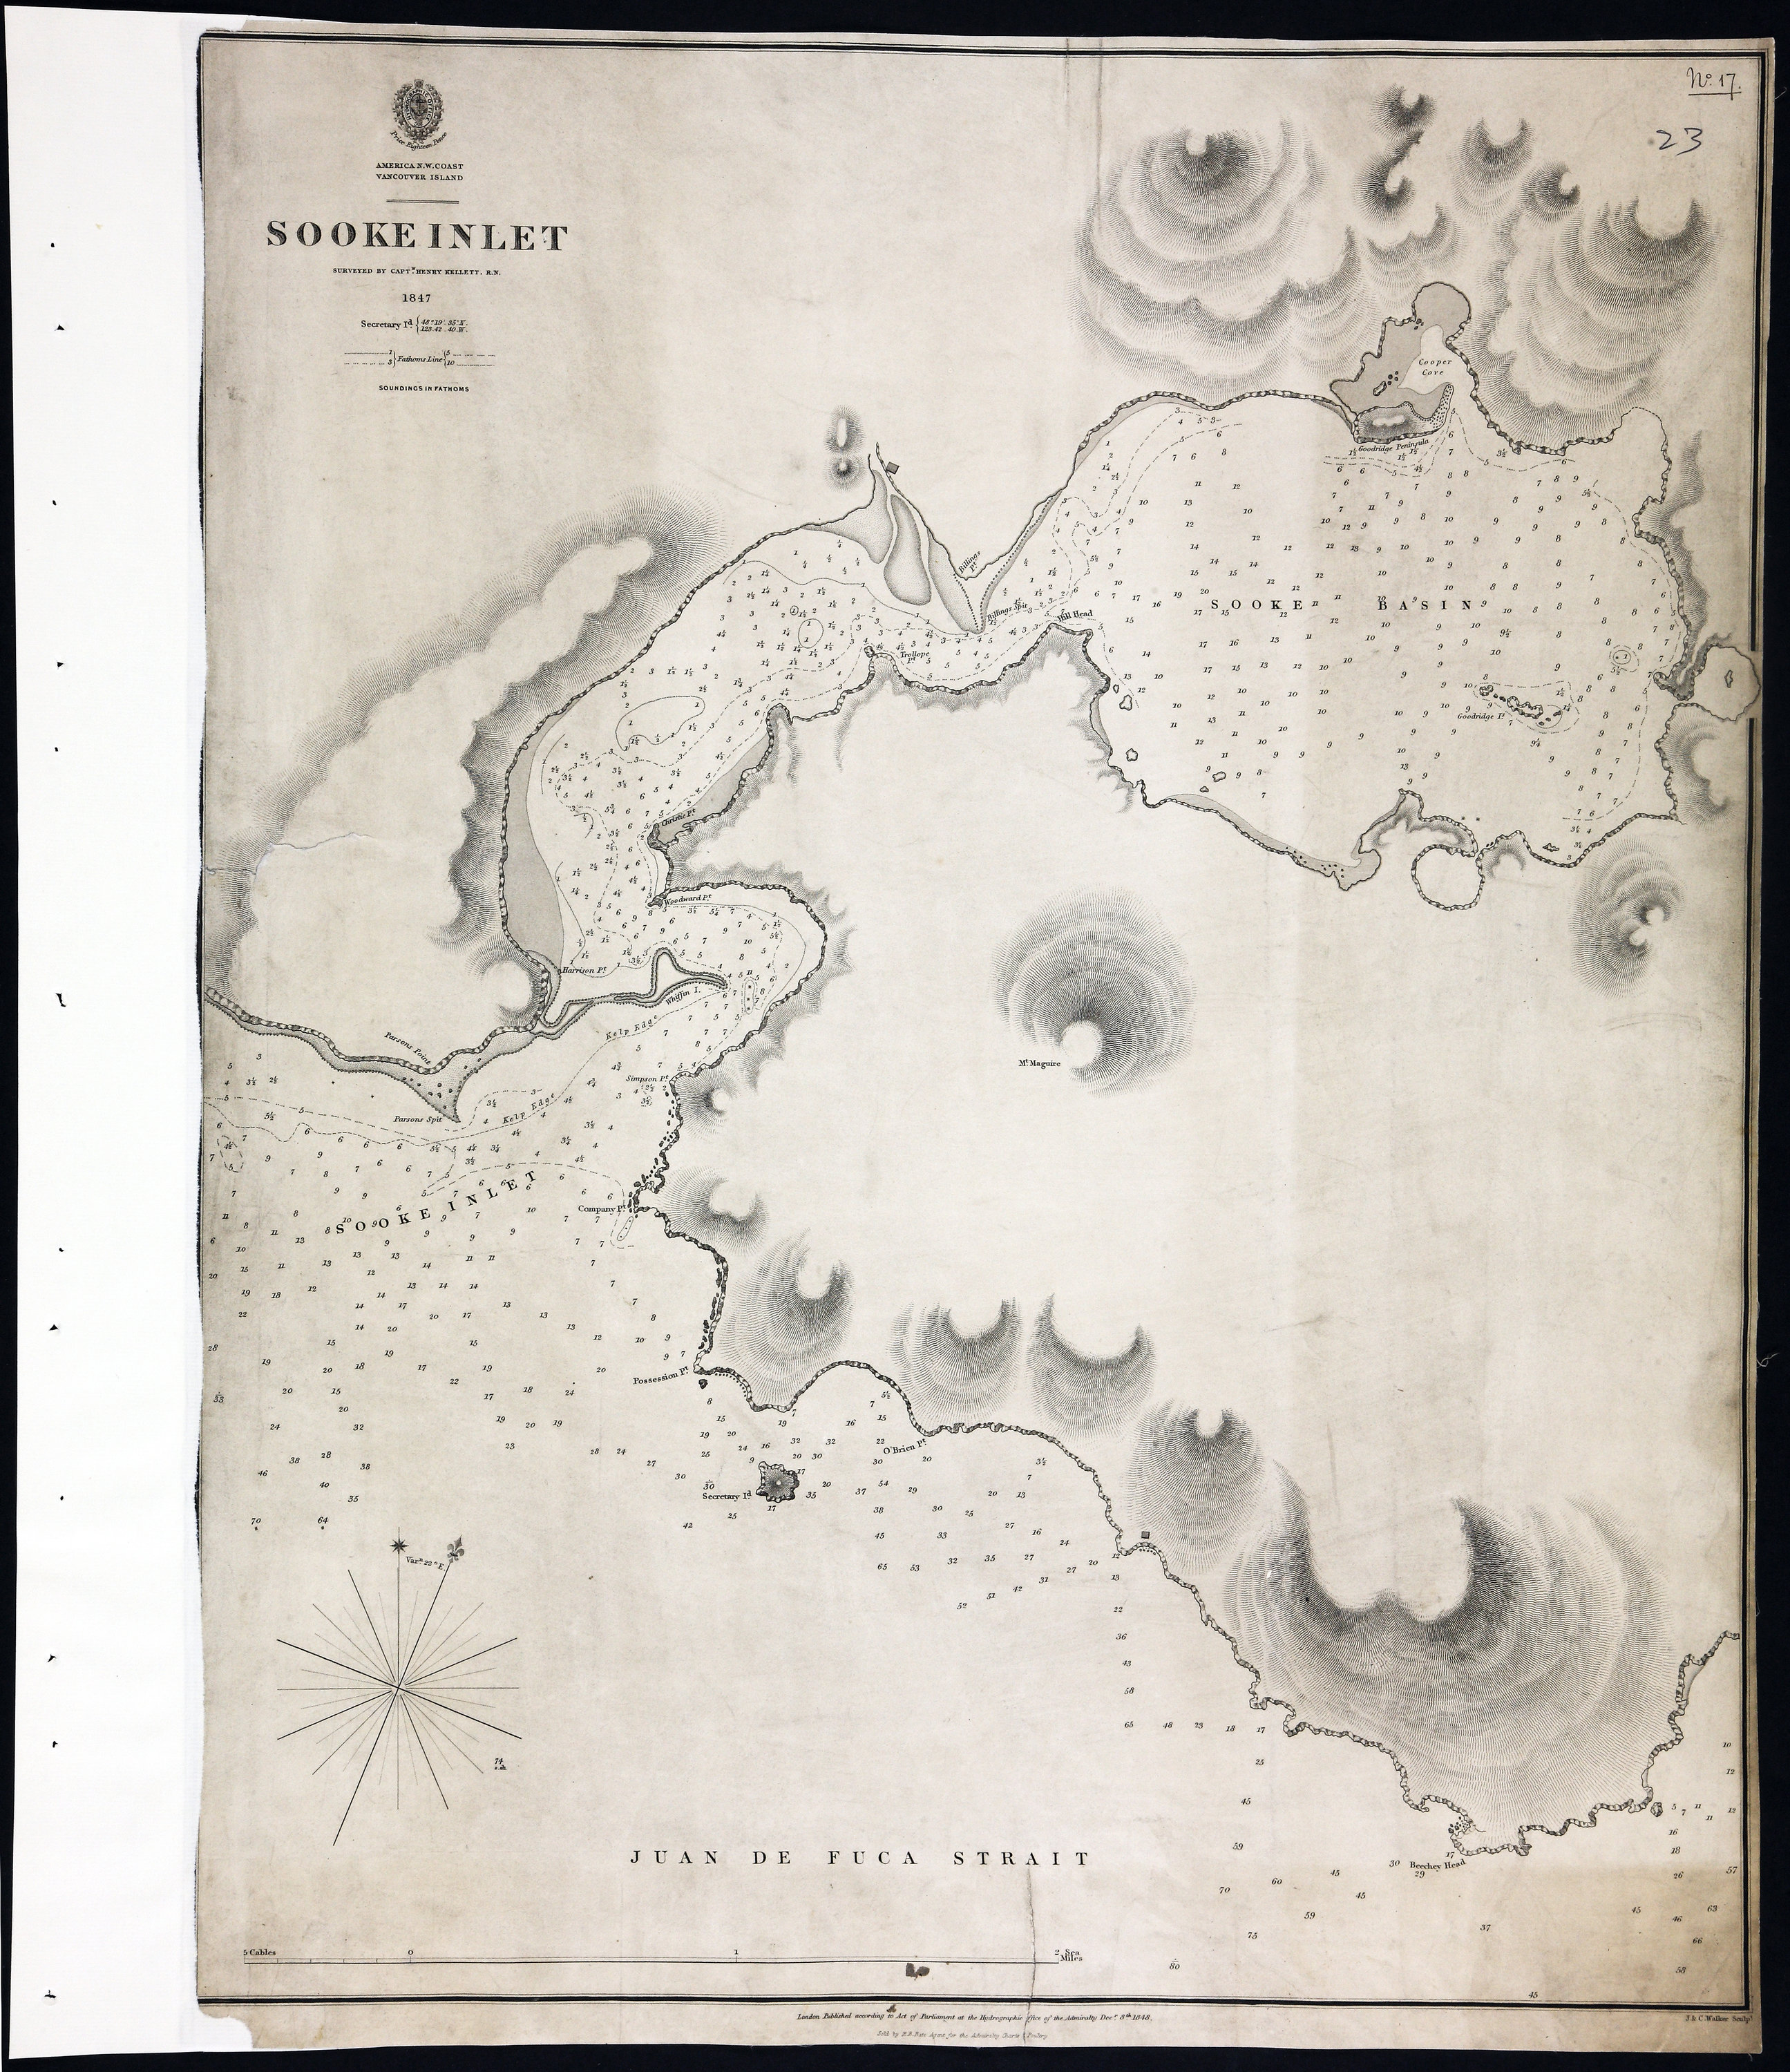 San Juan Water Boundary (Arbitration) : list of maps sent to Admiral Prevost at Berlin on the 12th June 1872 [map 22]